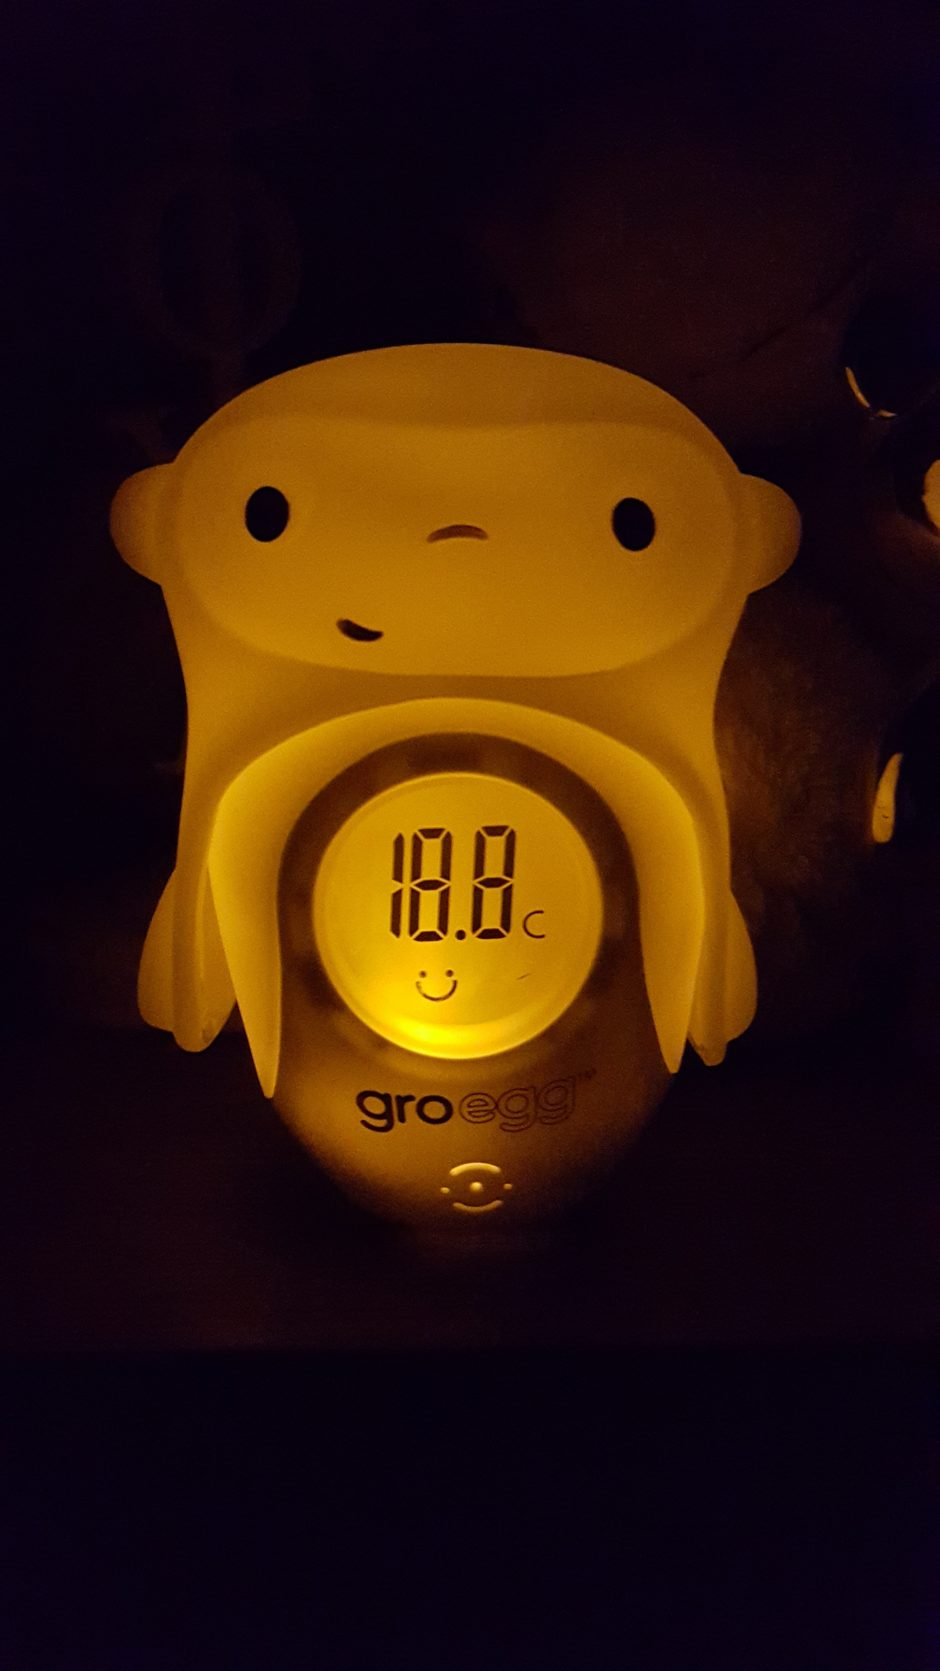 Baby Thermometers Baby Safety & Health Helpful Grobag Egg Baby Nursery Thermometer And Night Light Used But Good Condition